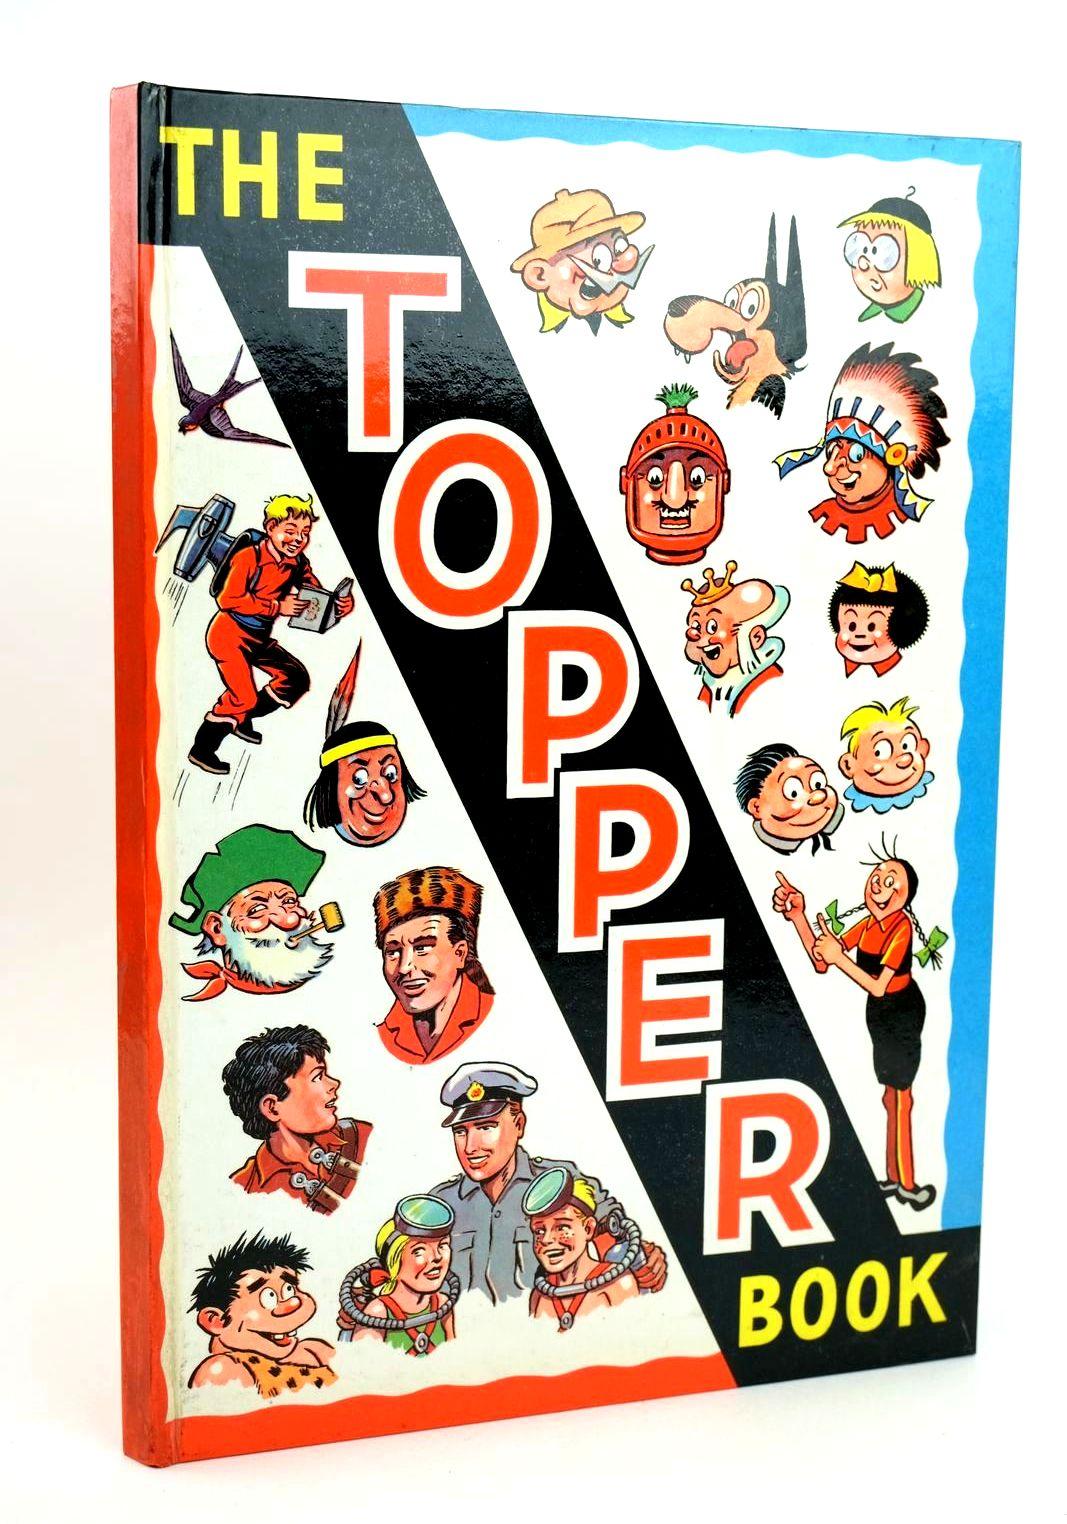 Photo of THE TOPPER BOOK 1960 published by D.C. Thomson & Co Ltd., John Leng & Co. Ltd. (STOCK CODE: 1318670)  for sale by Stella & Rose's Books